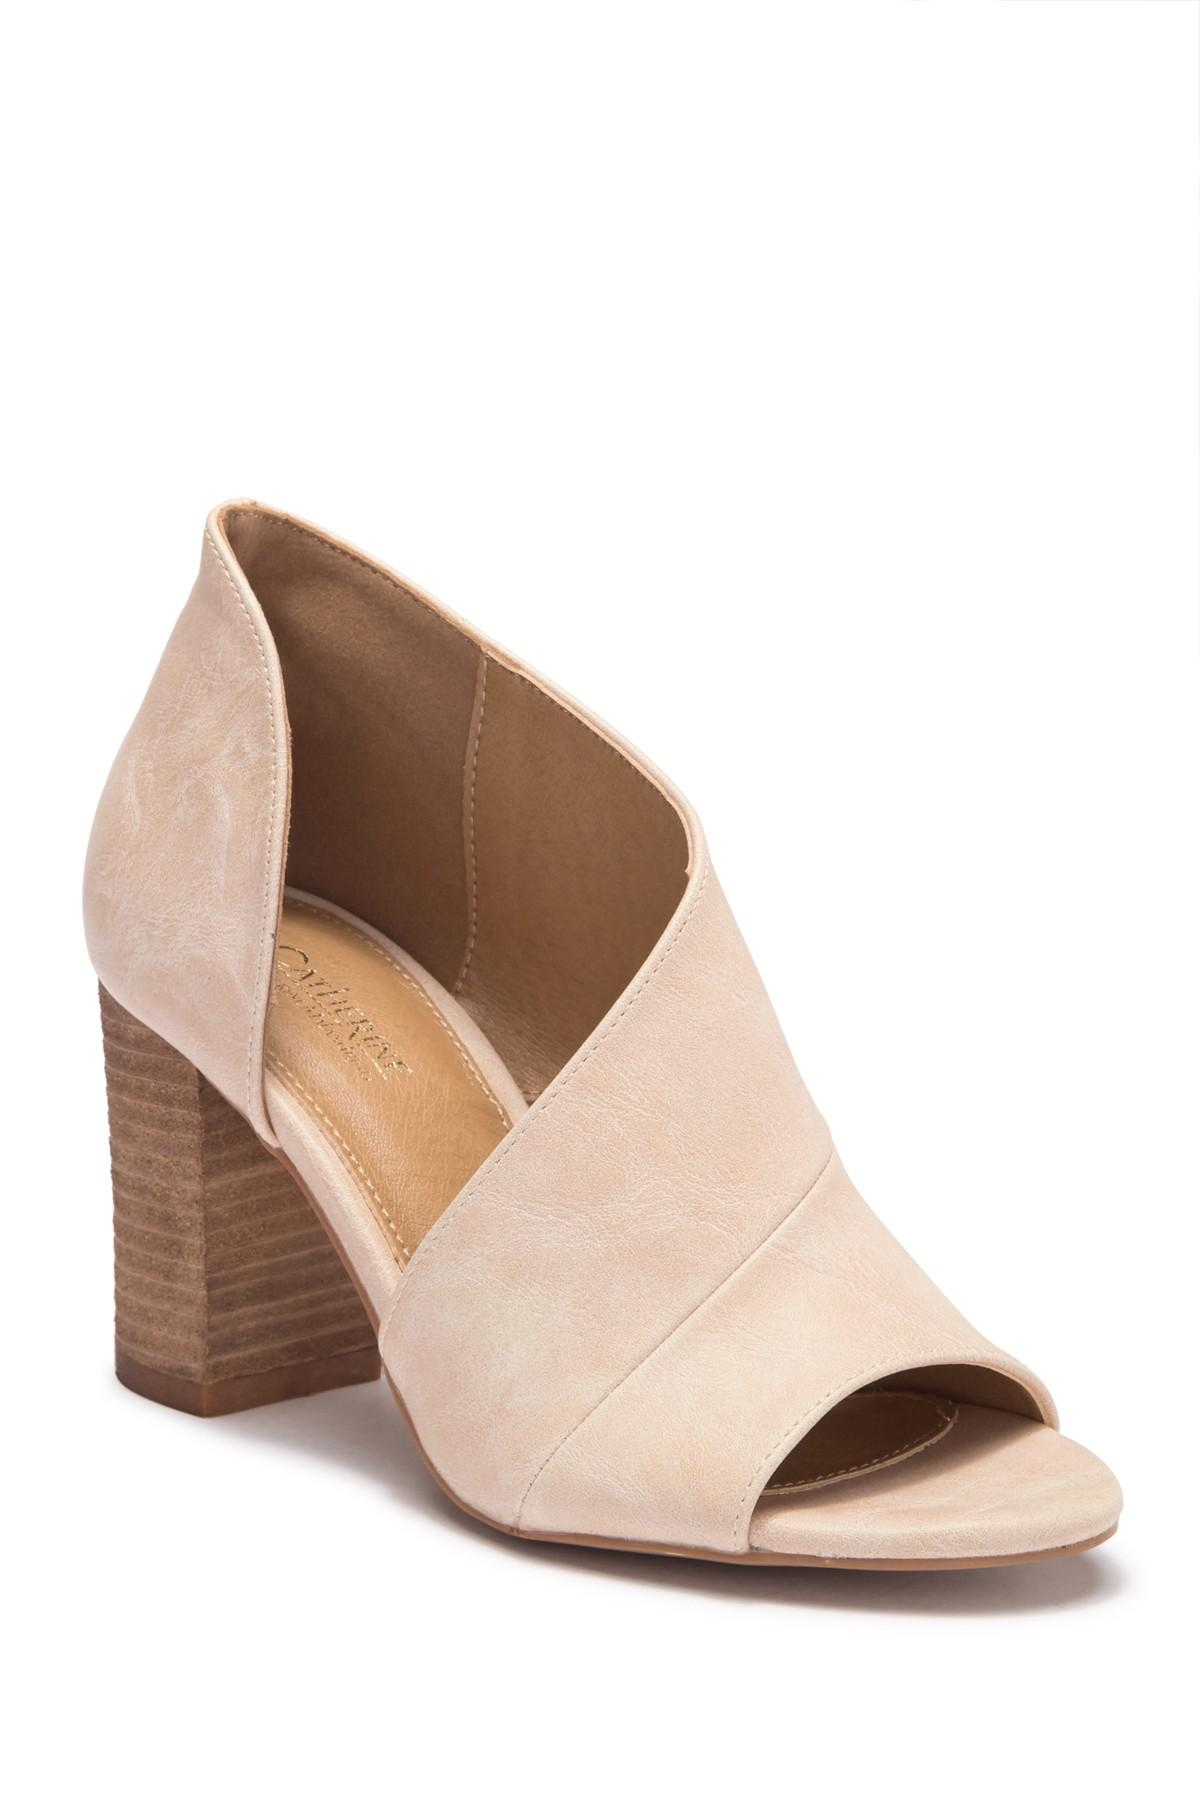 8d6c5a87886 Lyst - Catherine Malandrino Alio D orsay Sandal in Natural